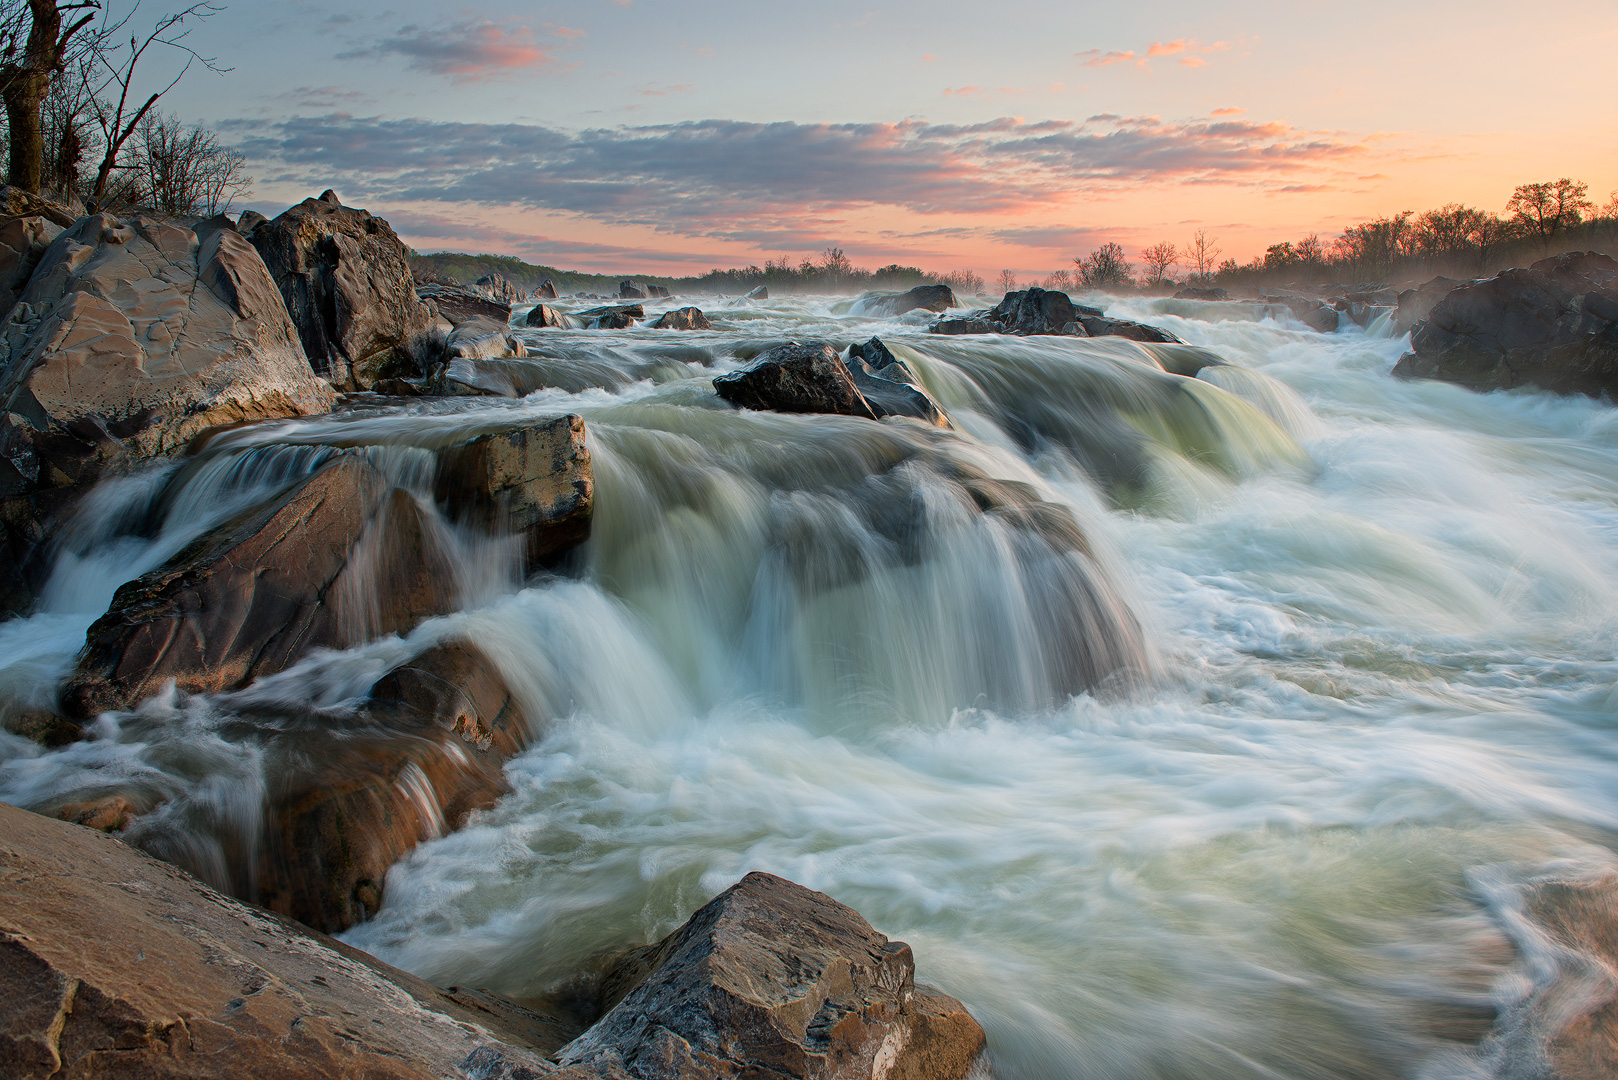 River, Canal, Great Falls Park, Potomac, Virginia, Maryland, Great Falls, River, National Park Service, Mather Gorge, water...